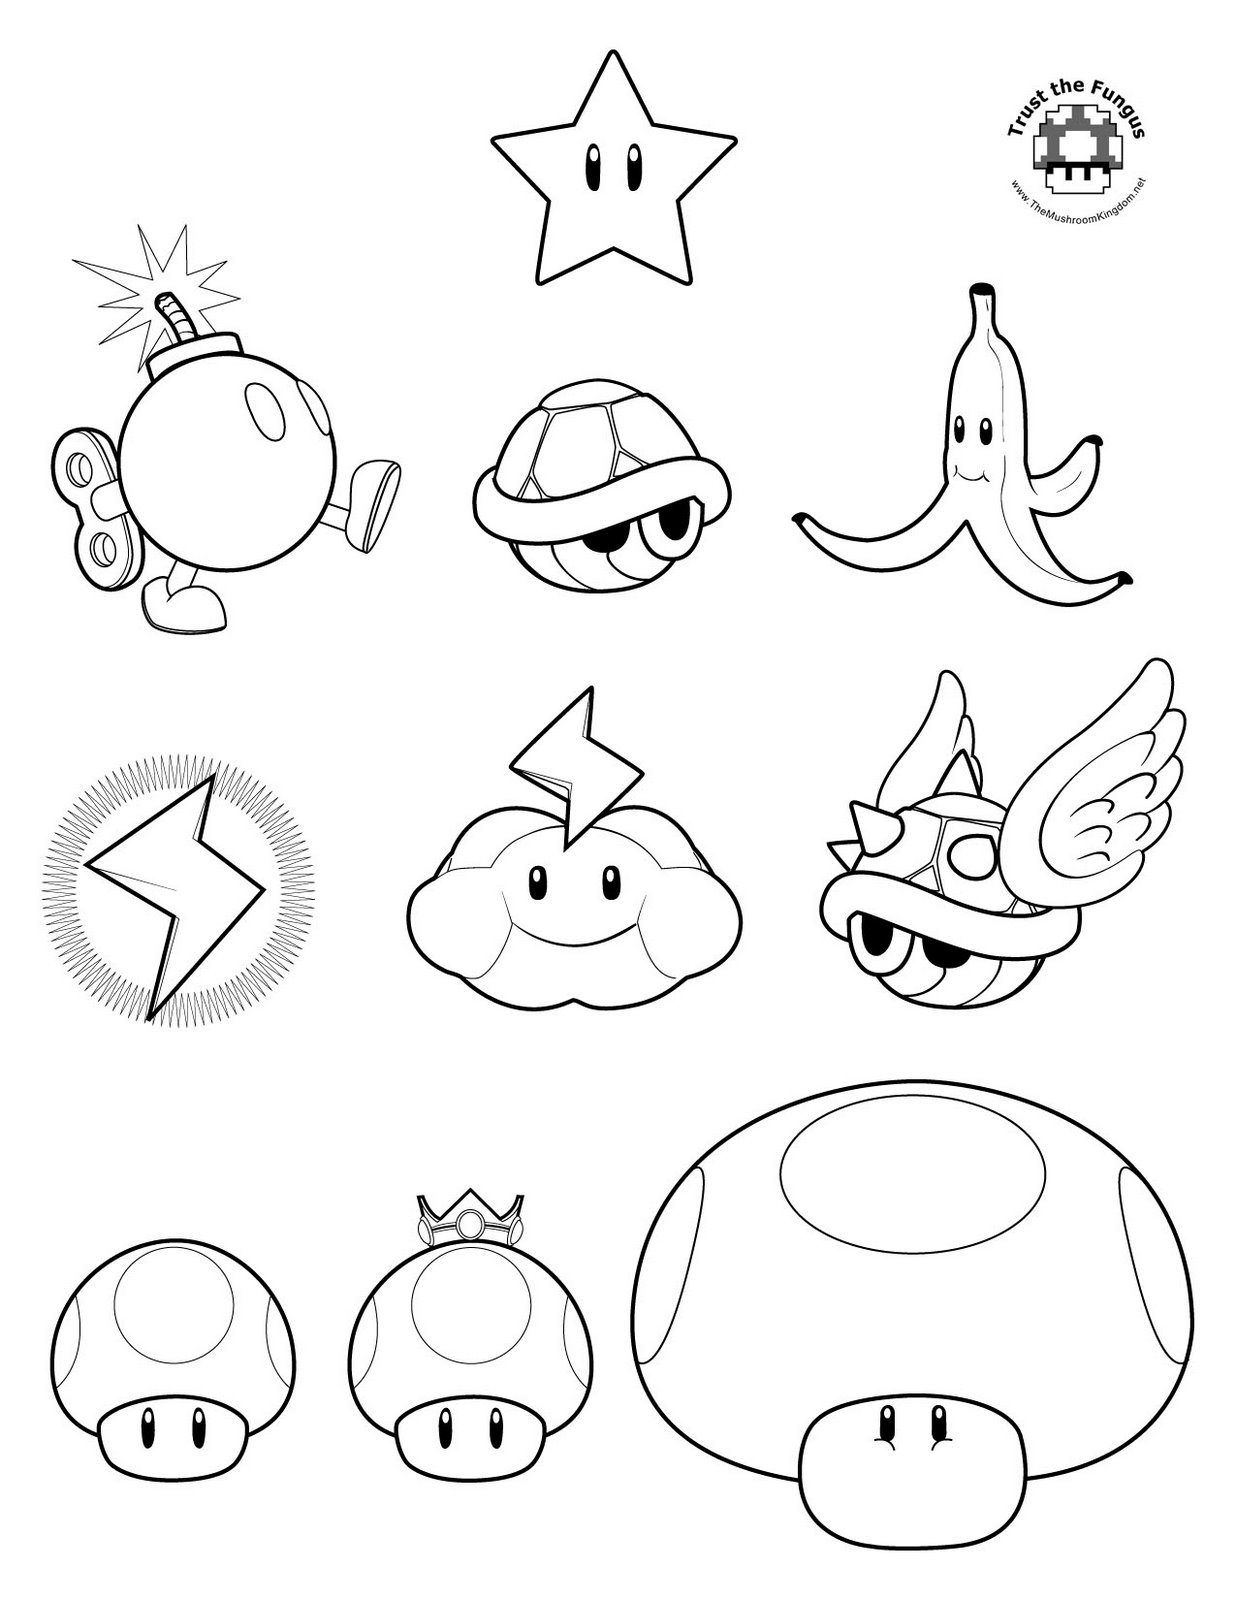 1236x1600 Colering Pages Mario Kart Coloring Pages Coloring Pages